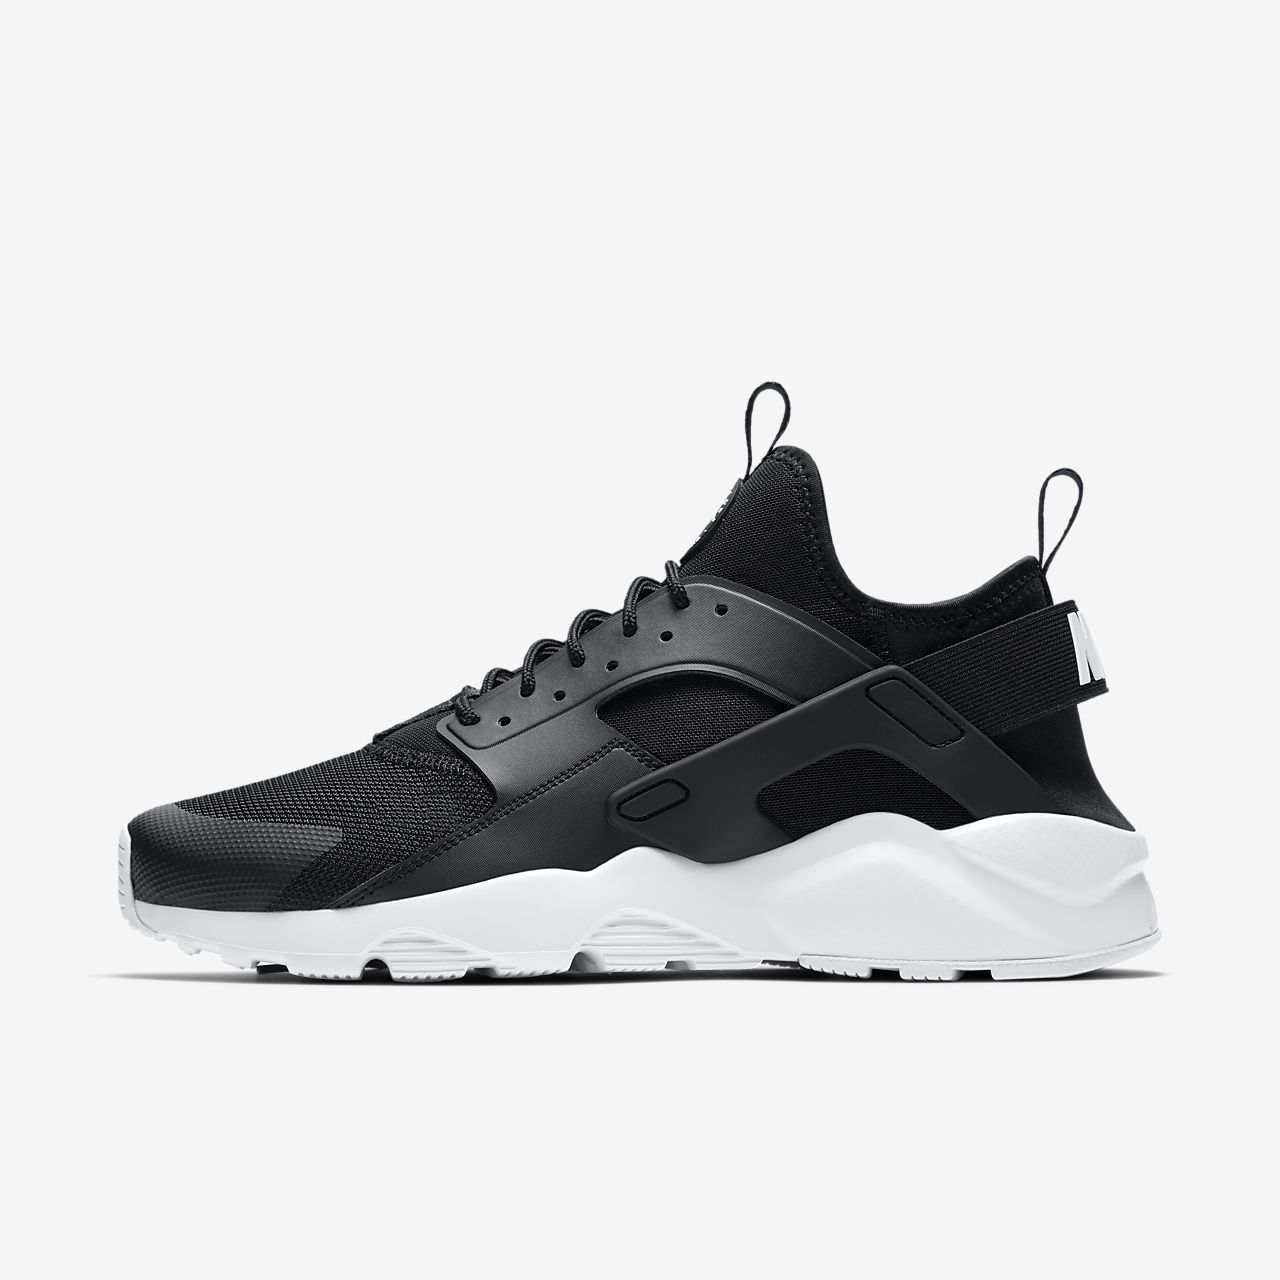 bc787618d680 Nike Air Huarache Ultra Men s Shoe. Nike.com GB